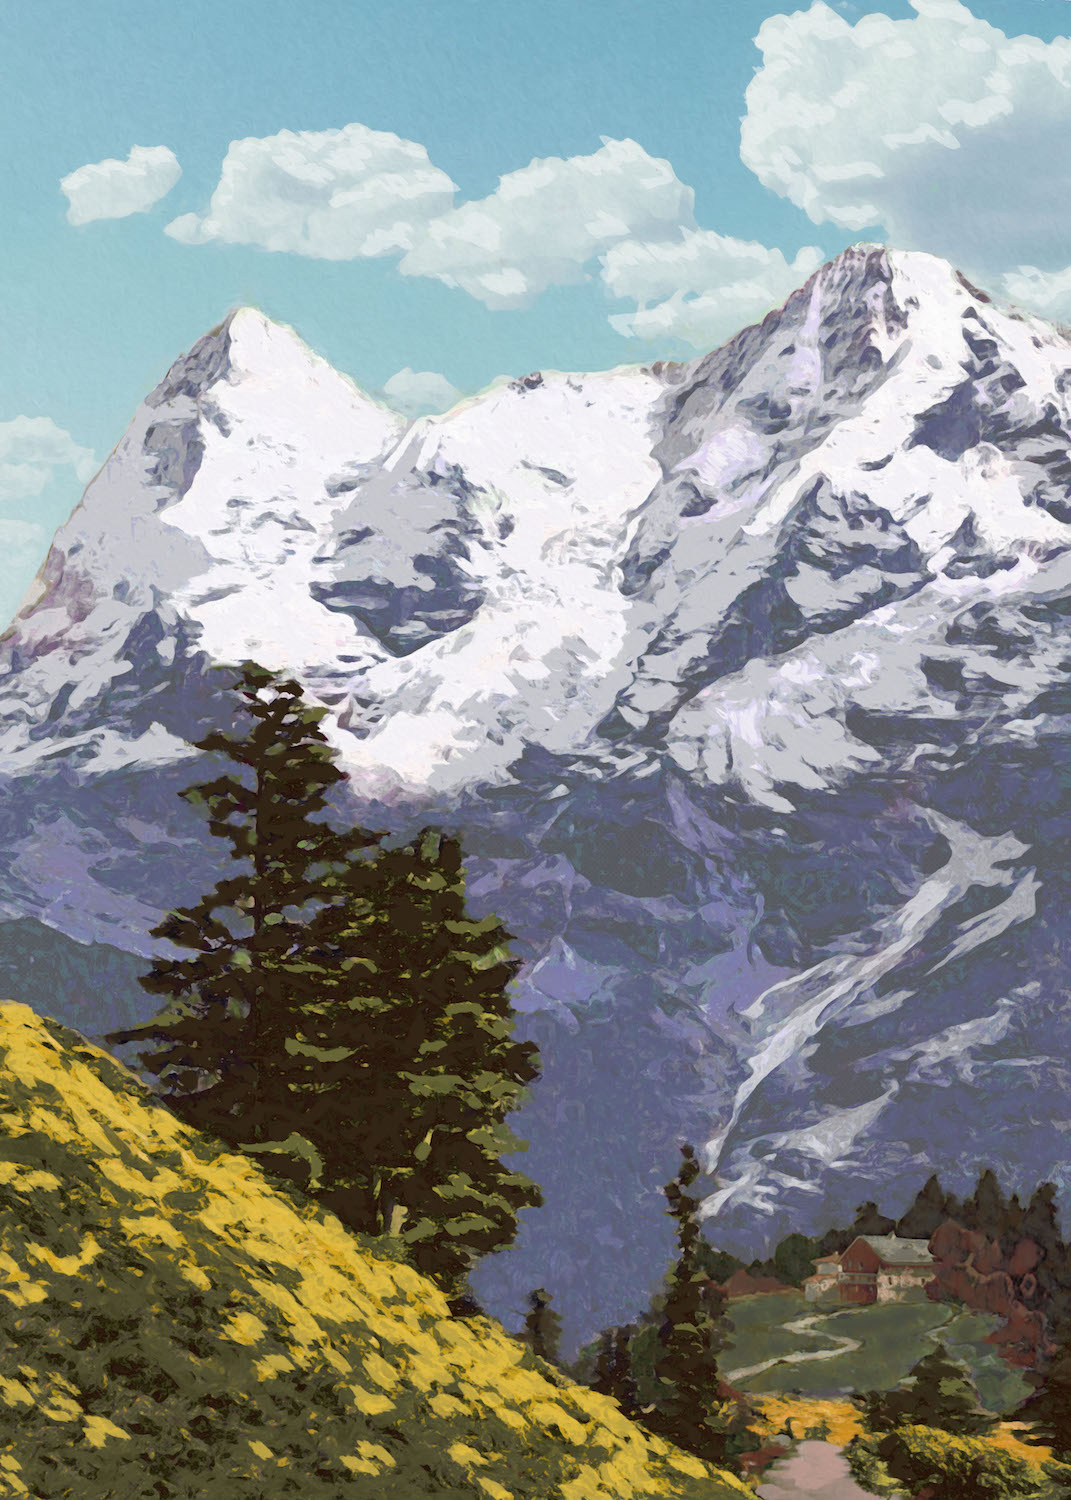 SWISSalps posterstyle 60x84 FINAL.jpg